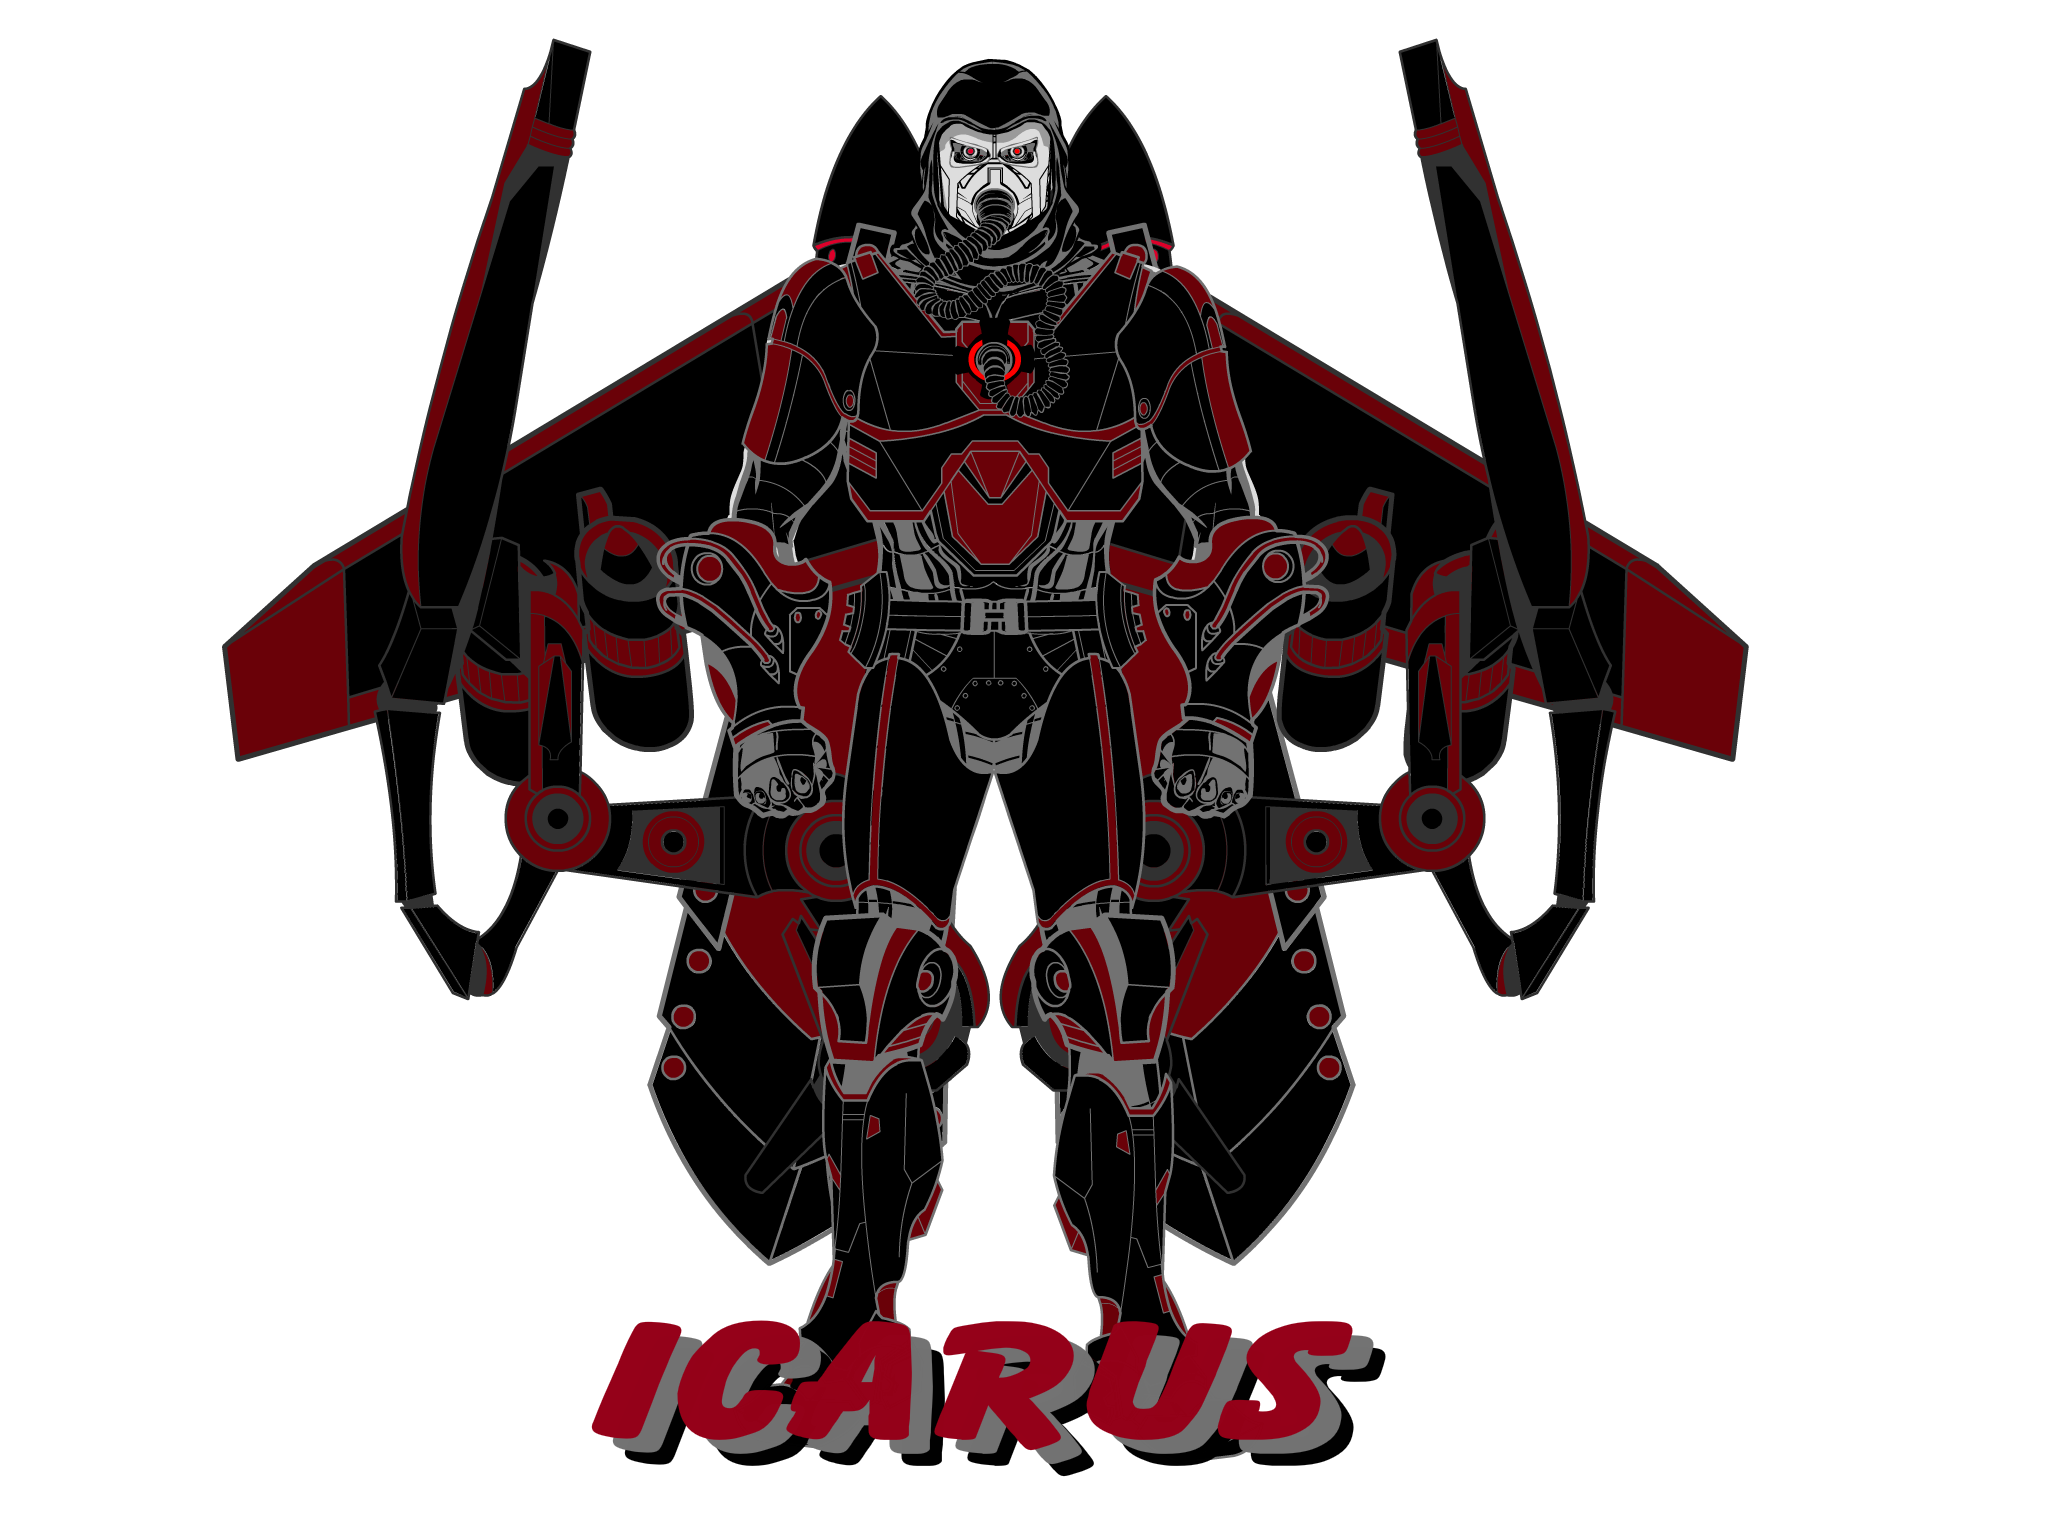 http://www.heromachine.com/wp-content/legacy/forum-image-uploads/woody/2012/04/Icarus1.png